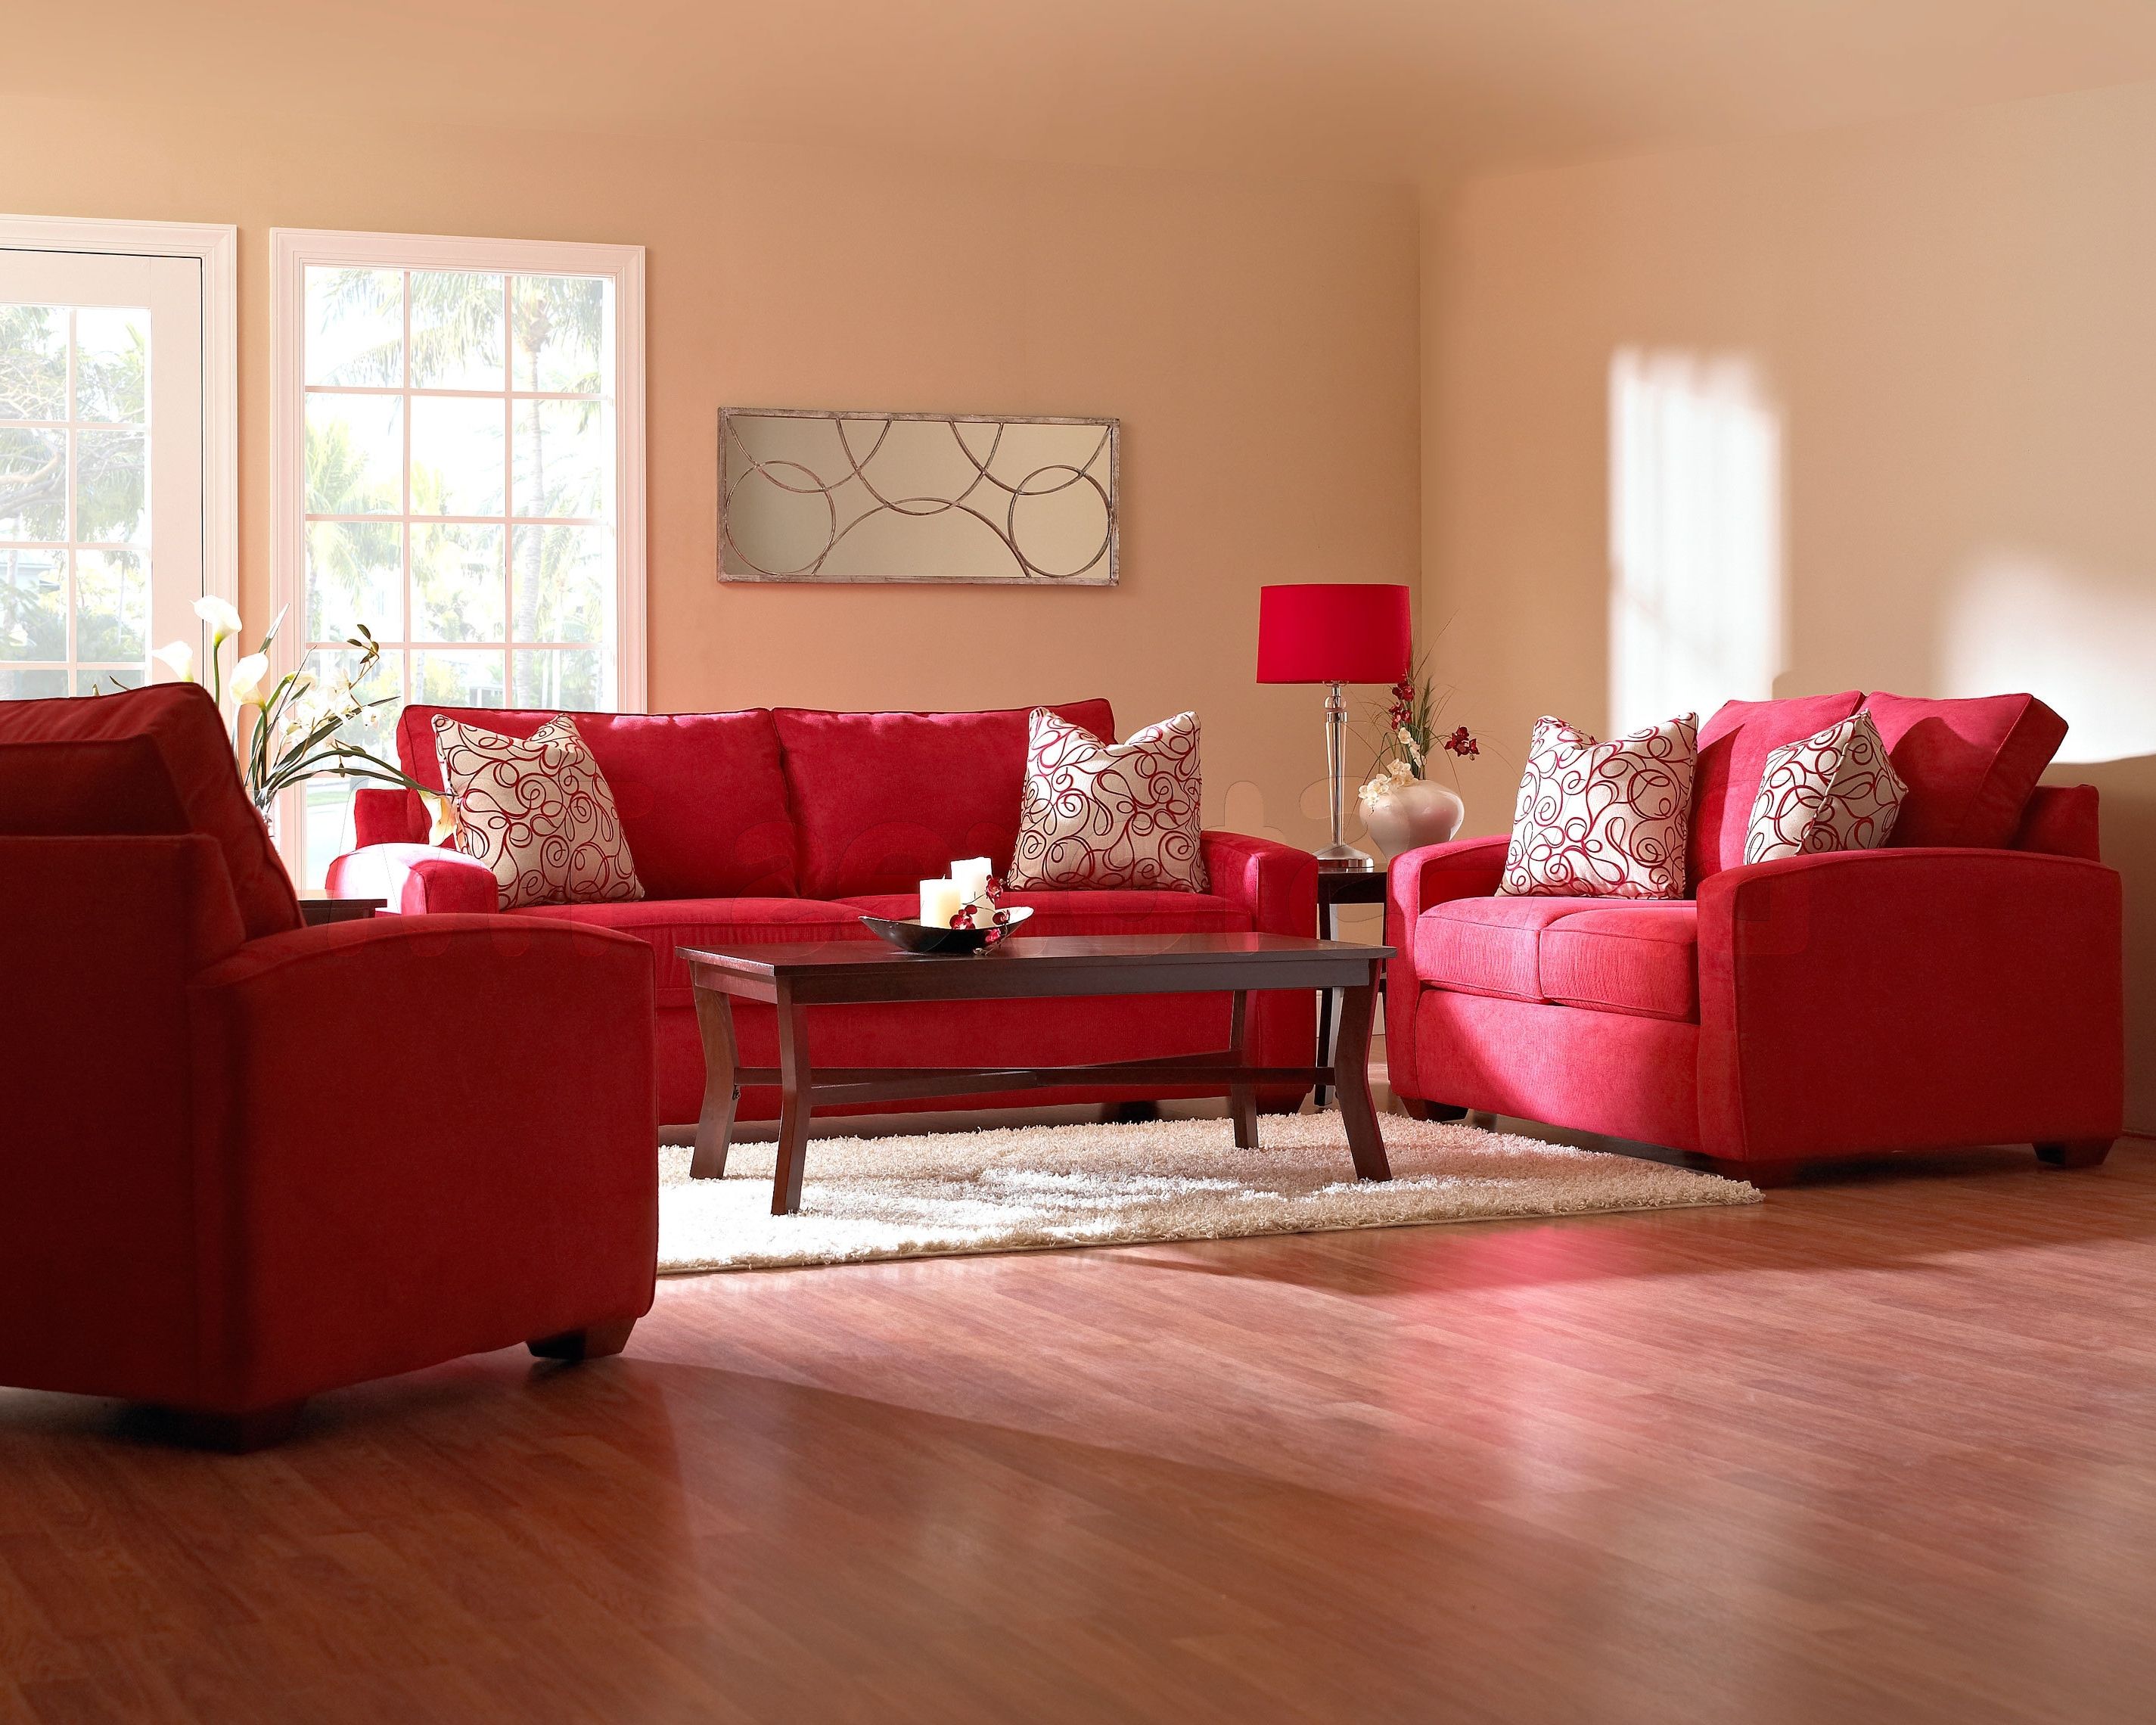 Red Sofa Chairs Inside Widely Used Red Sofa Living Room Ideas Model Modern – Dma Homes (View 18 of 20)